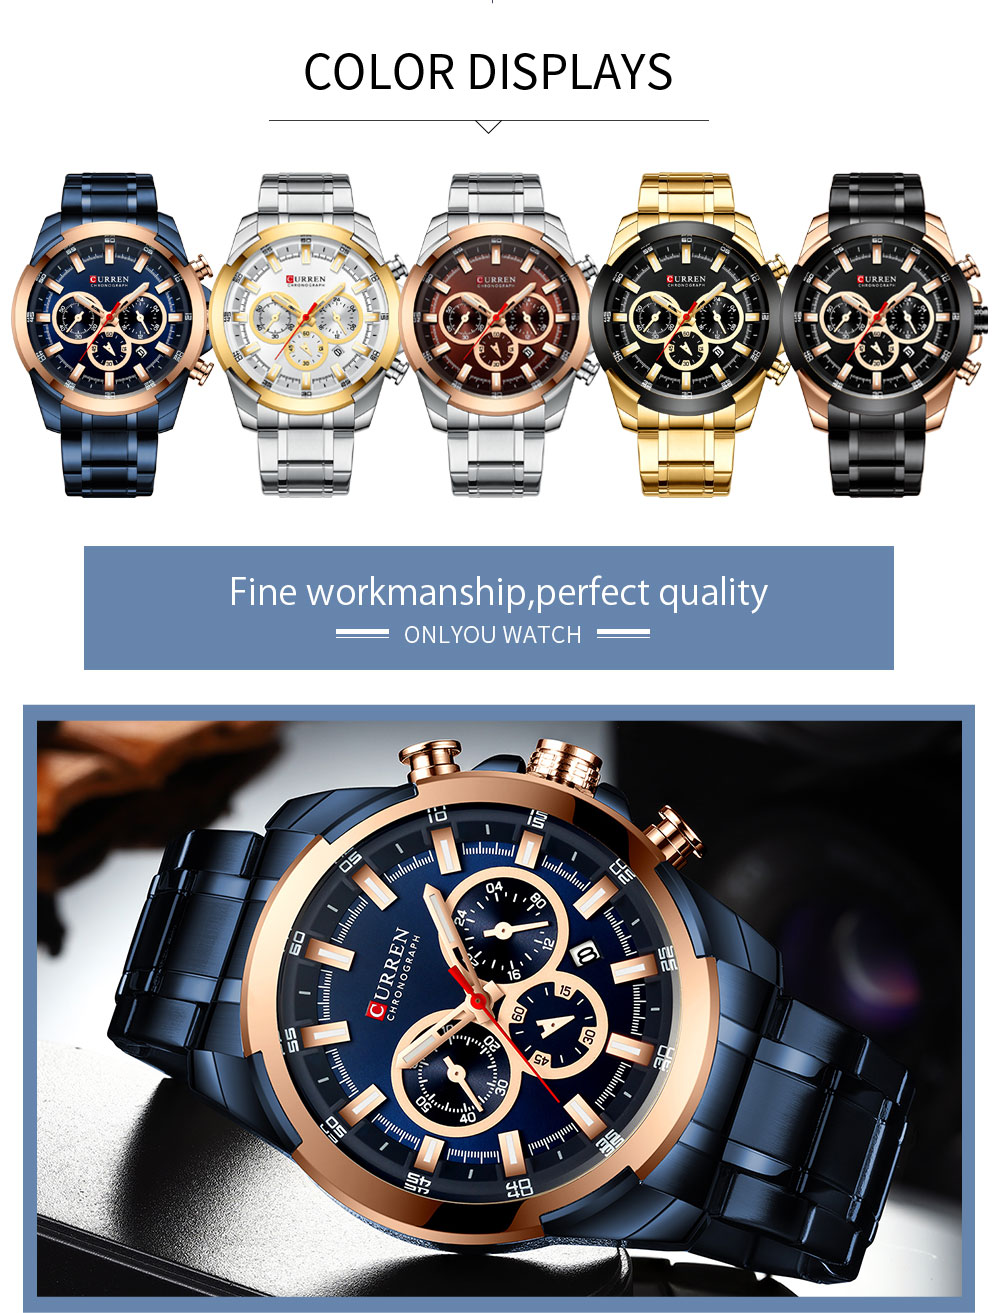 Image 5 - CURREN Man WristWatch Waterproof Chronograph Men Watch Military Top Brand Luxury Gold New Stainless Steel Sport Male Clock 8361Quartz Watches   -